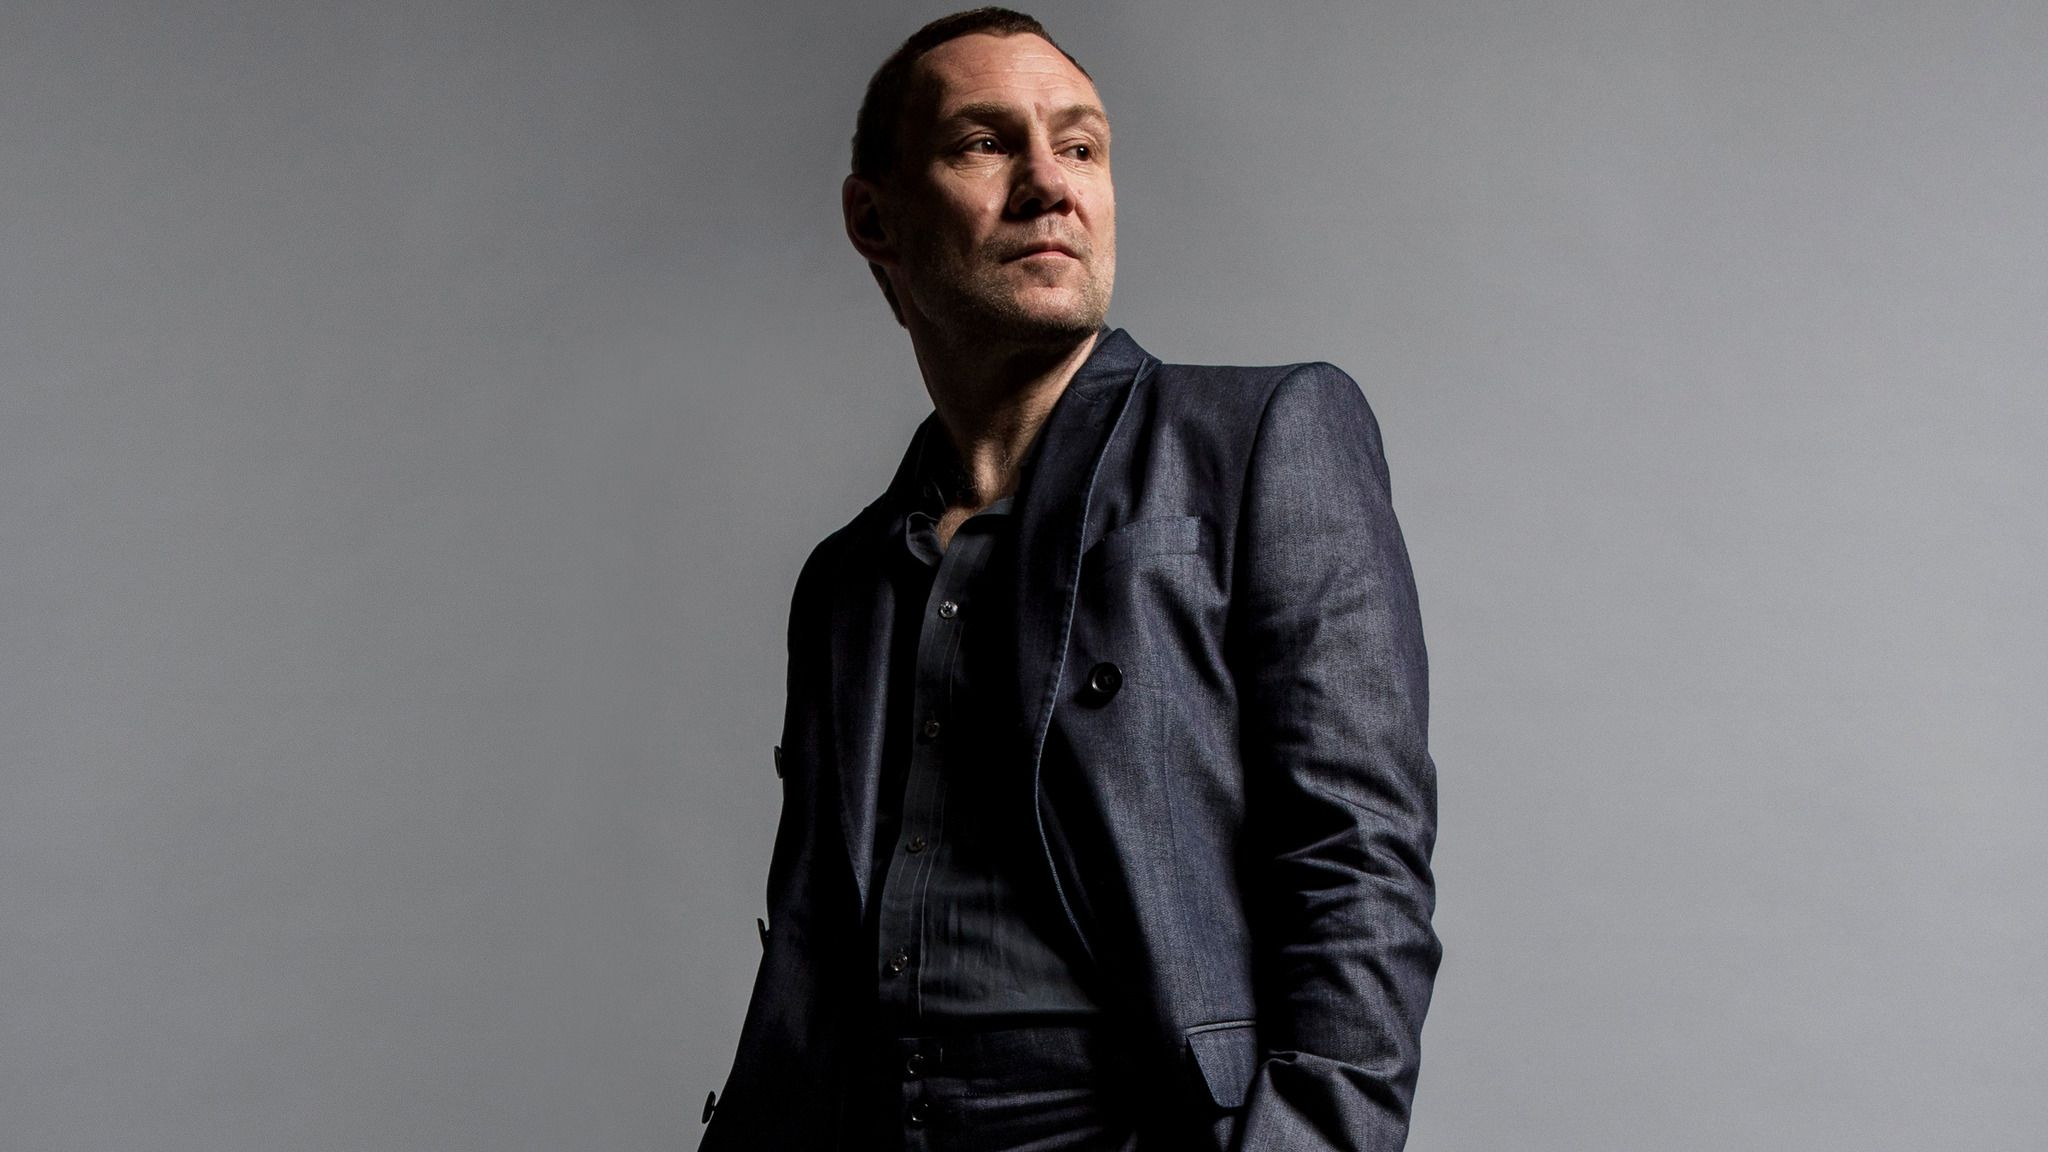 David Gray - Gold in a brass age